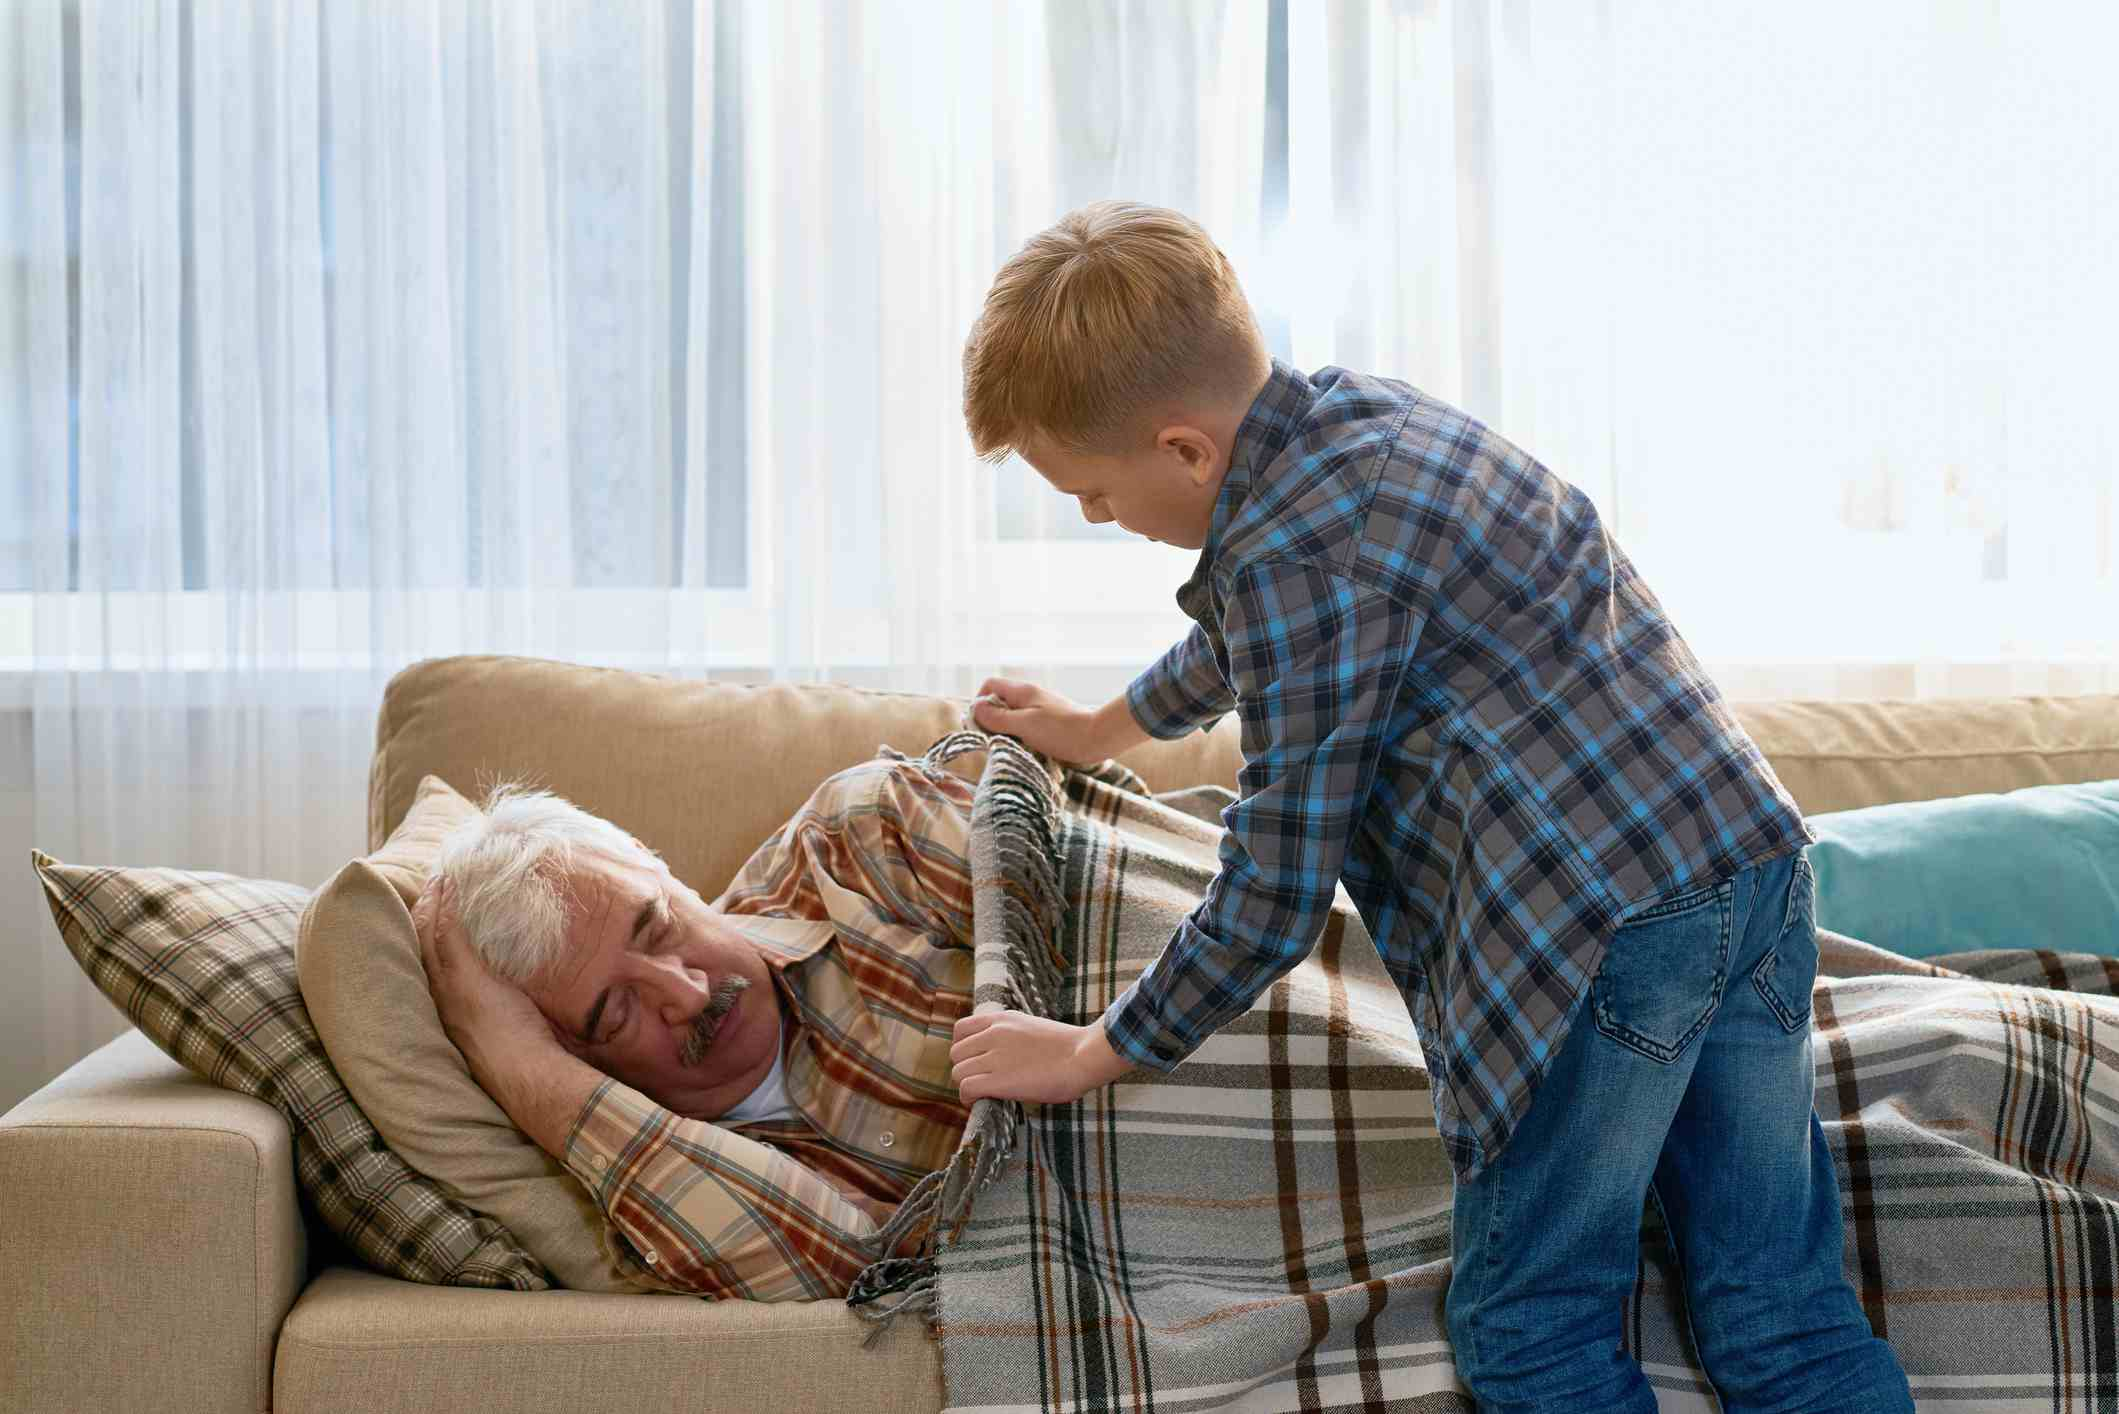 Careful grandson covering grandpa with blanket